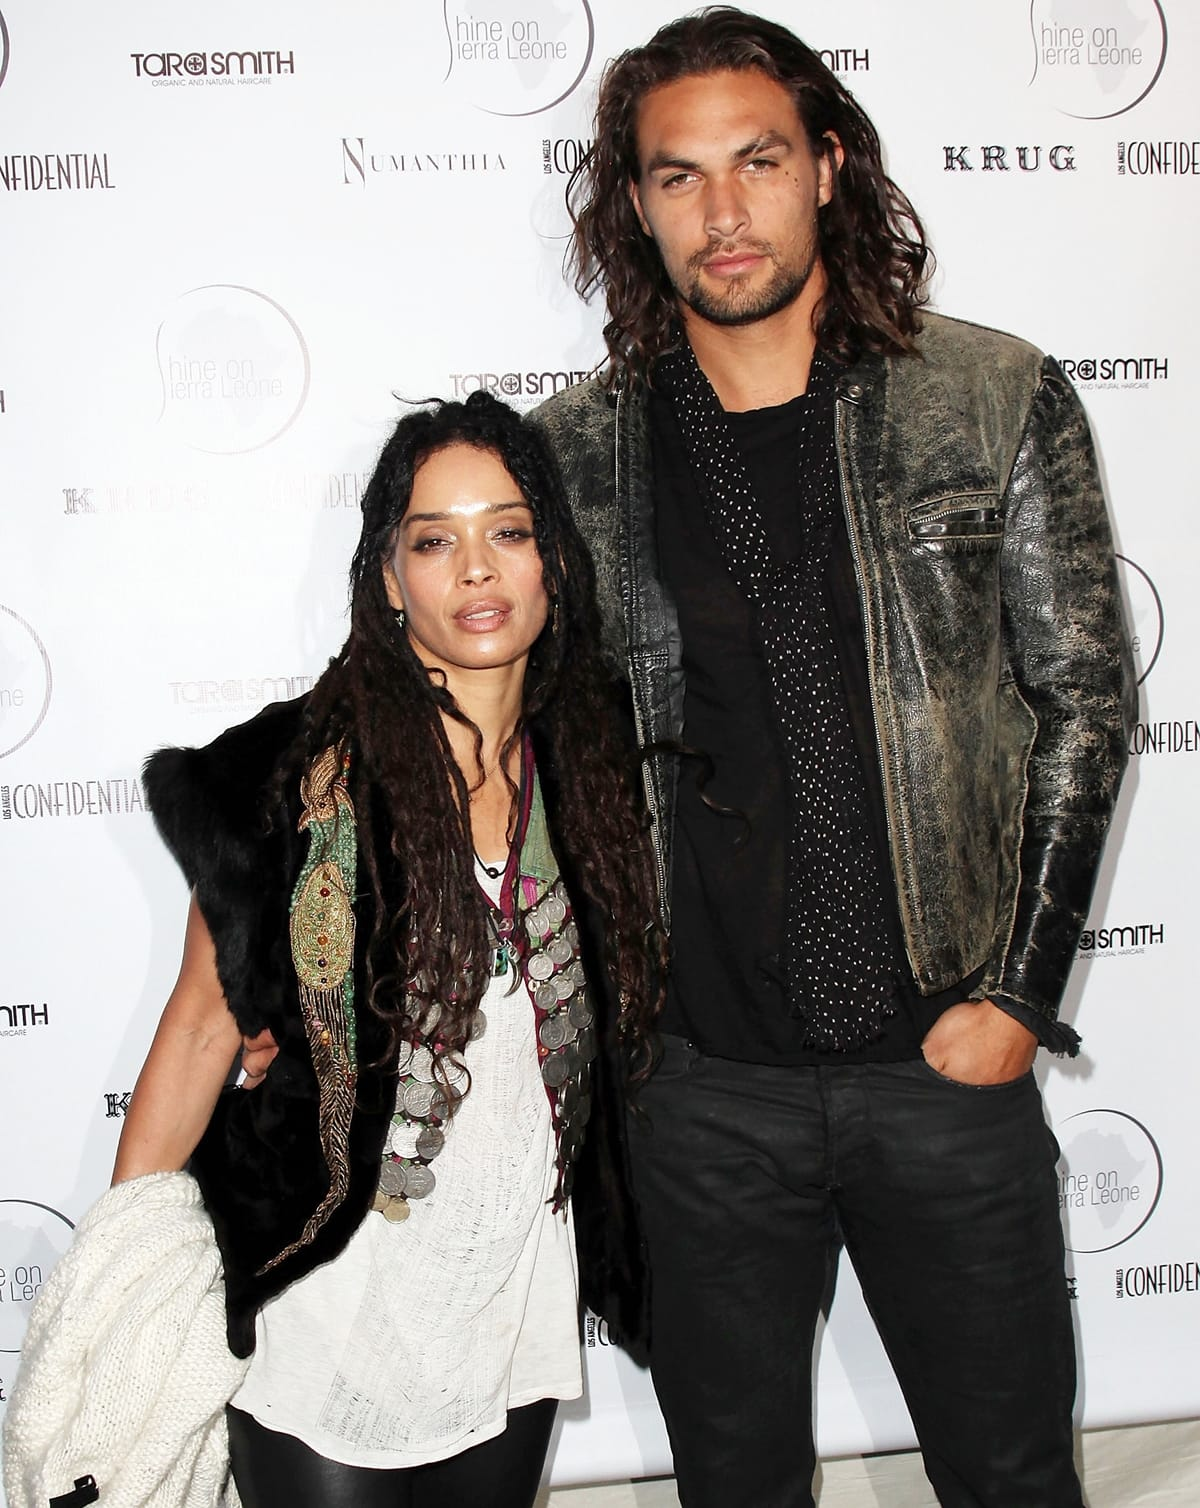 Lisa Bonet and Jason Momoa first met at a jazz club in Los Angeles in 2005